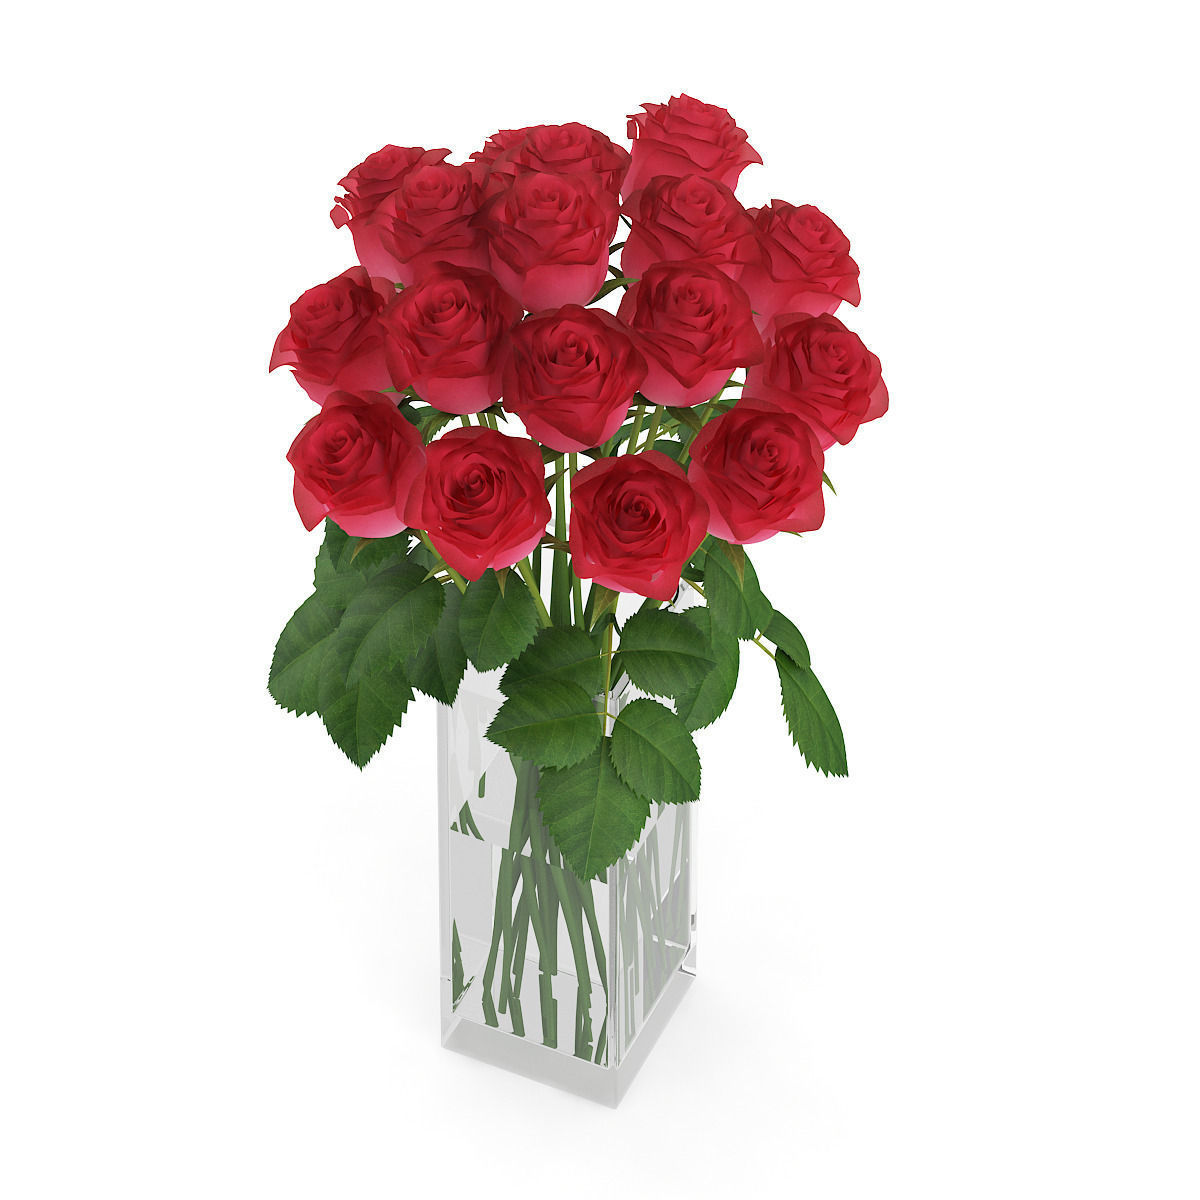 3d model red roses in glass vase cgtrader red roses in glass vase 3d model max obj fbx c4d mtl 5 reviewsmspy